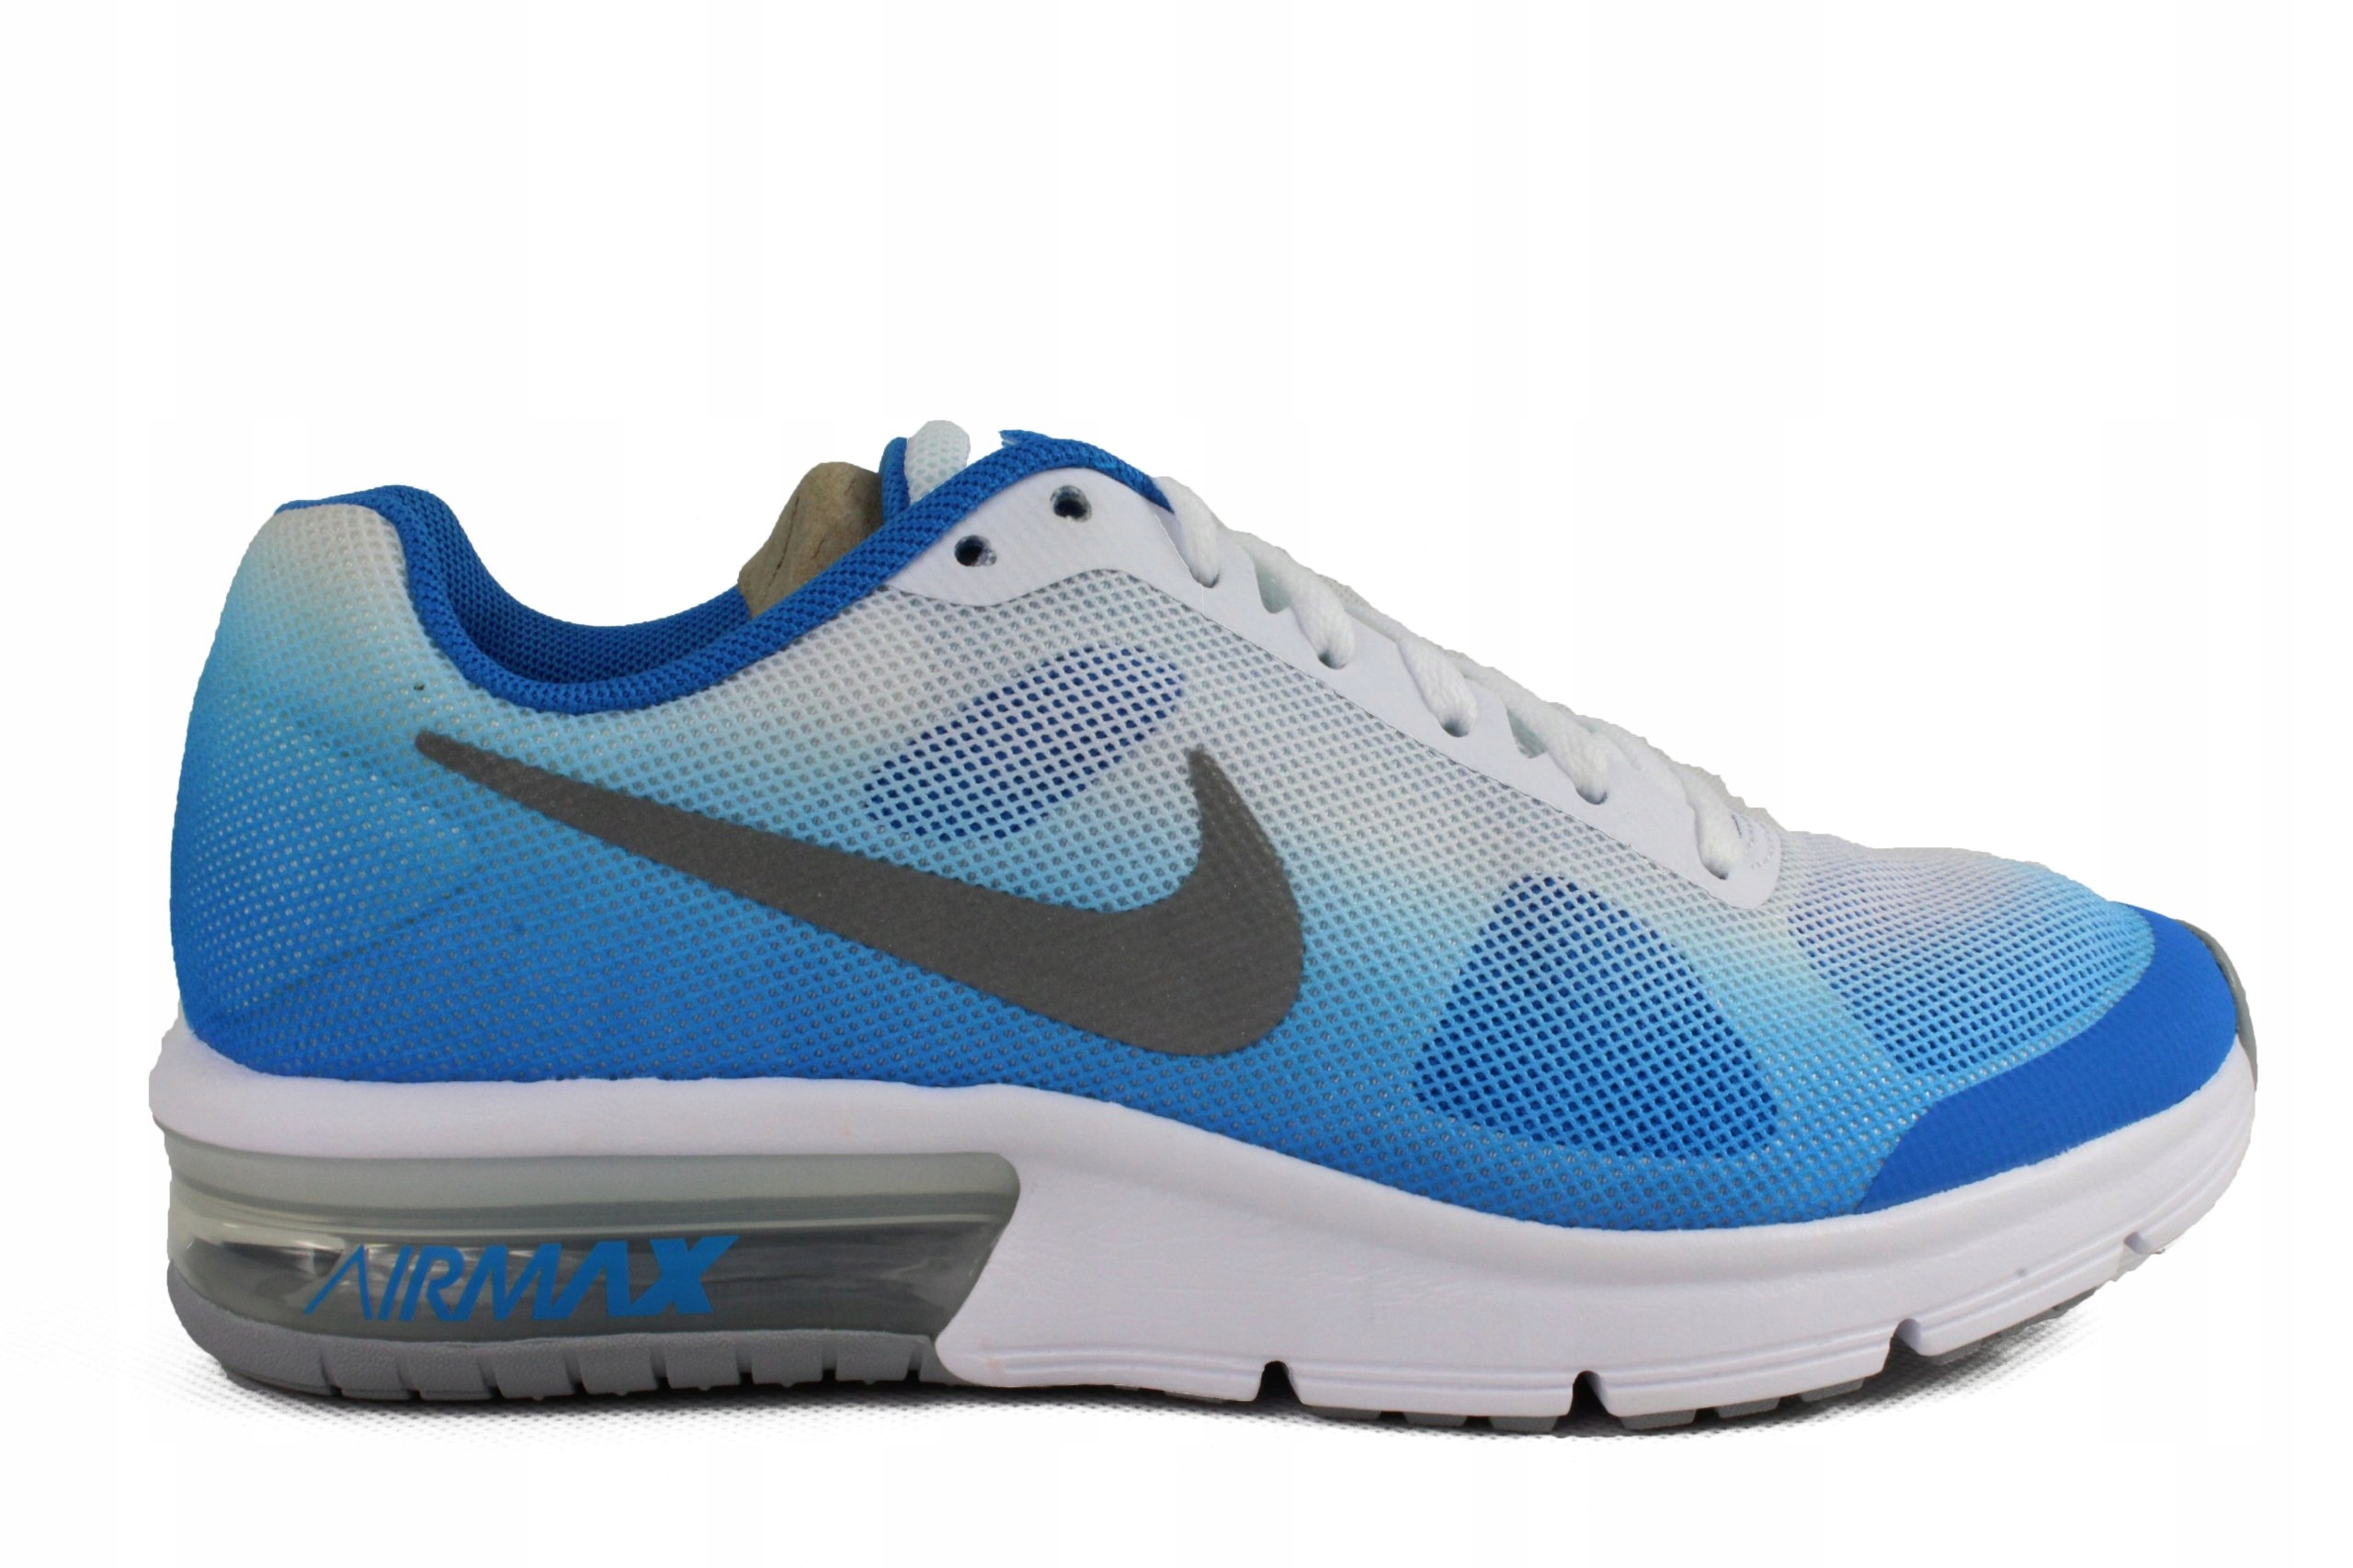 Buty Nike Air Max Sequent junior 36,5